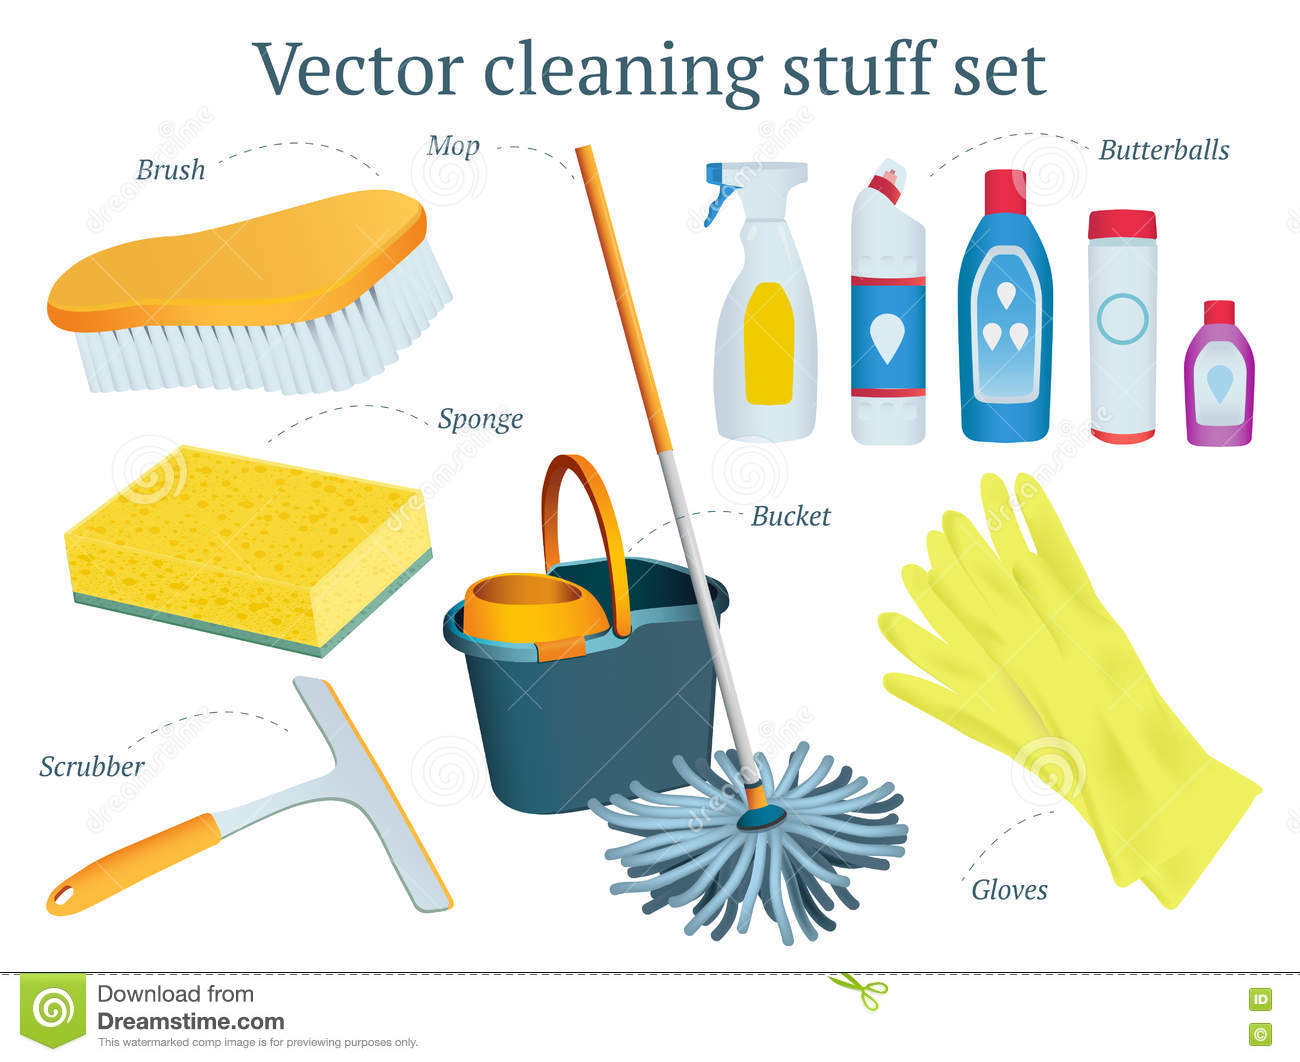 Set Of Vector Cleaning Stuff Design With Mop, Bucket, Butterball.